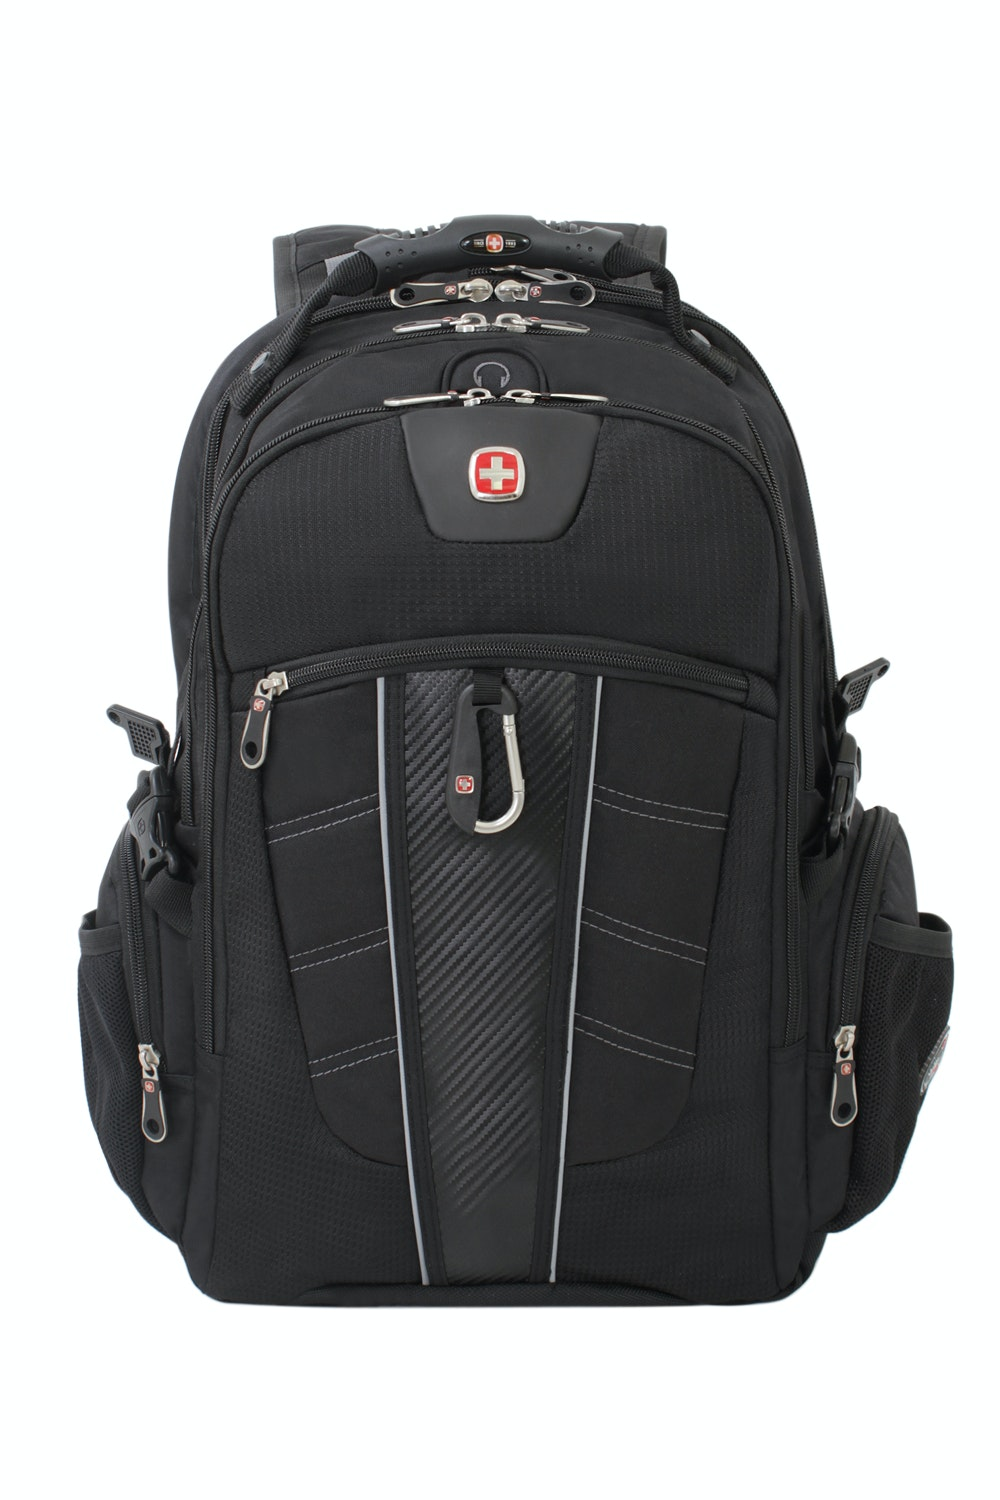 swiss army backpack deals